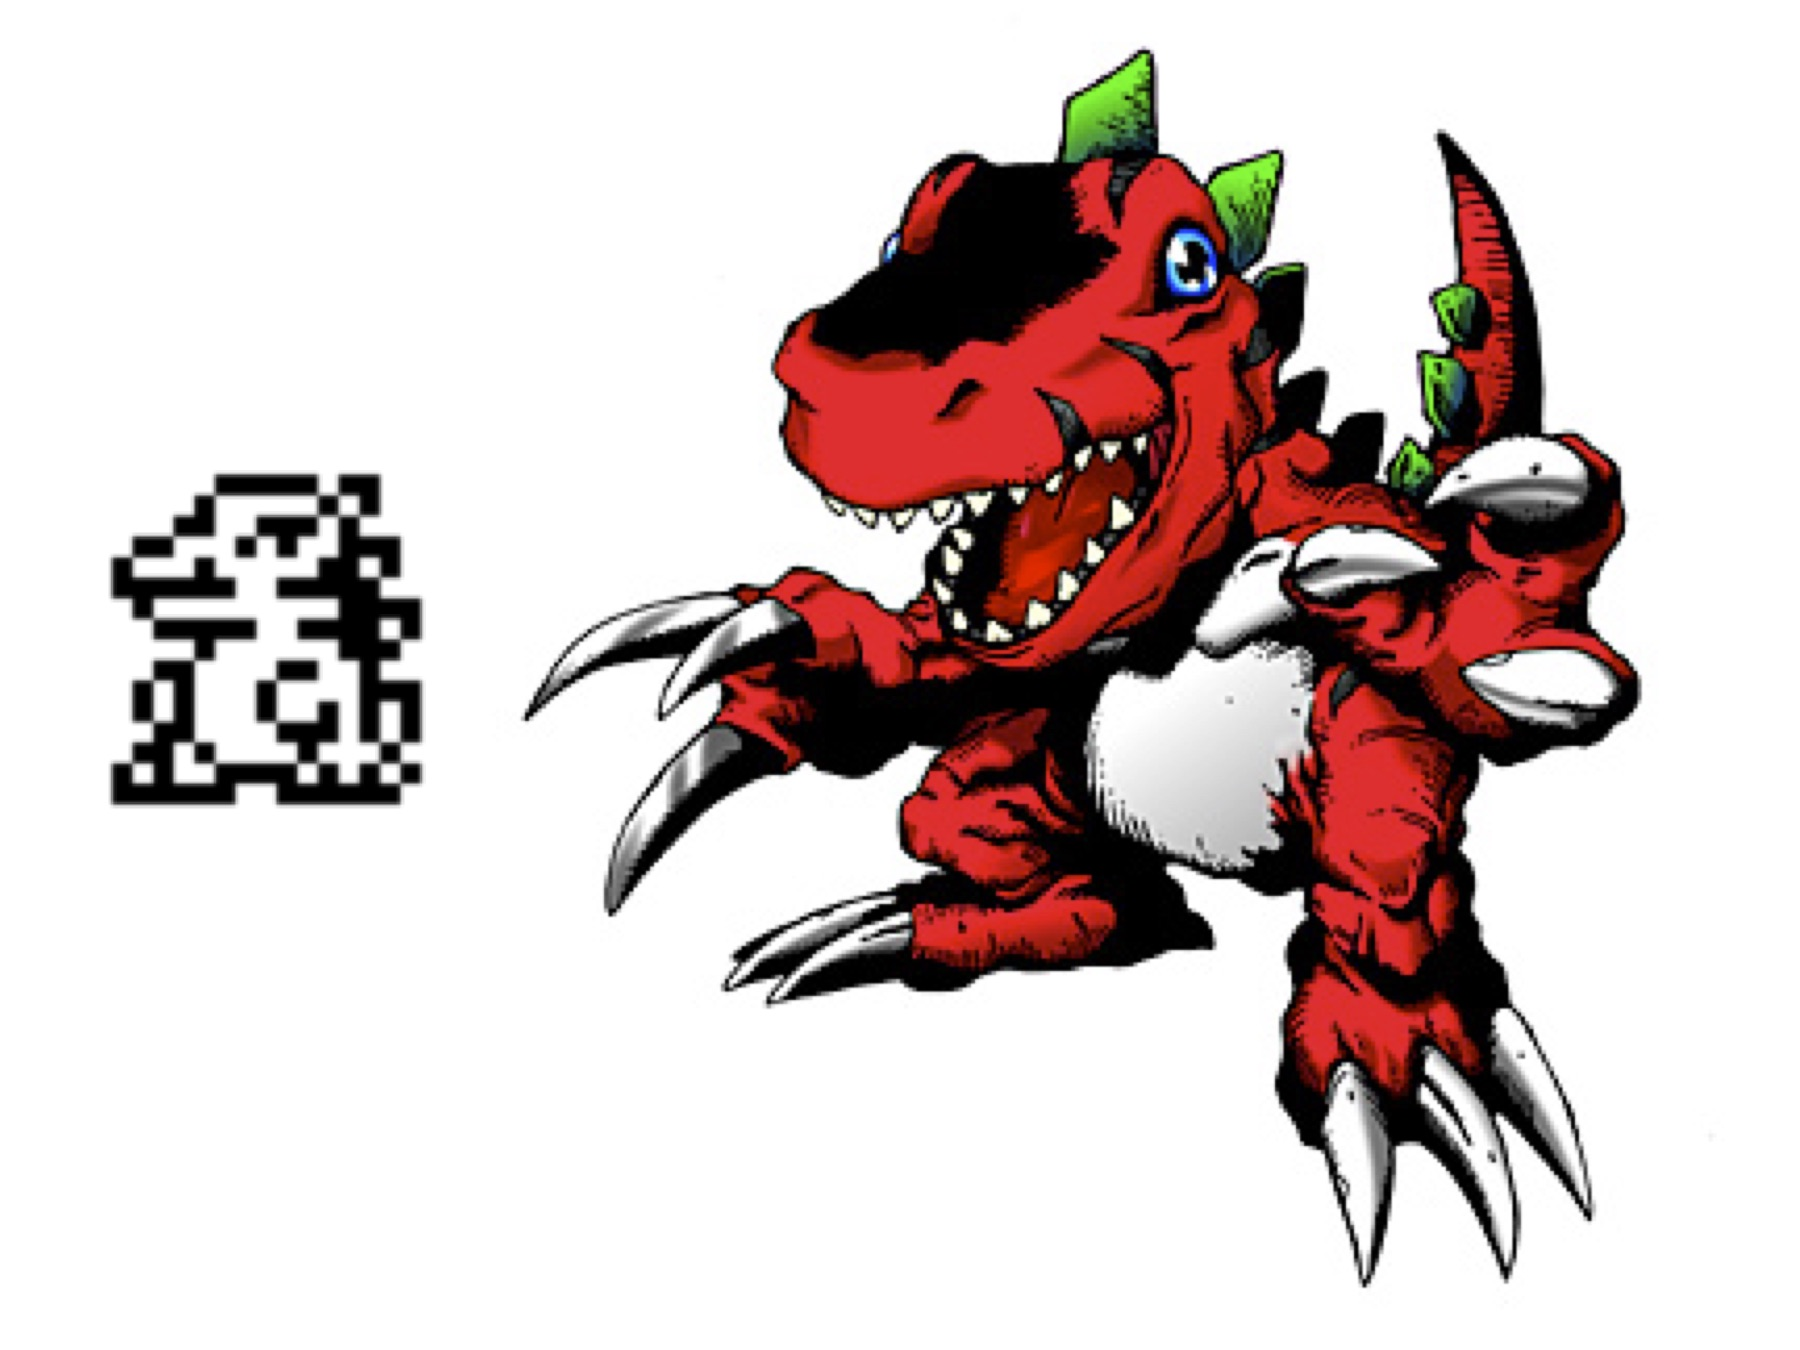 Tyrannomon, the first Digimon,  in his original pixel and trading card forms